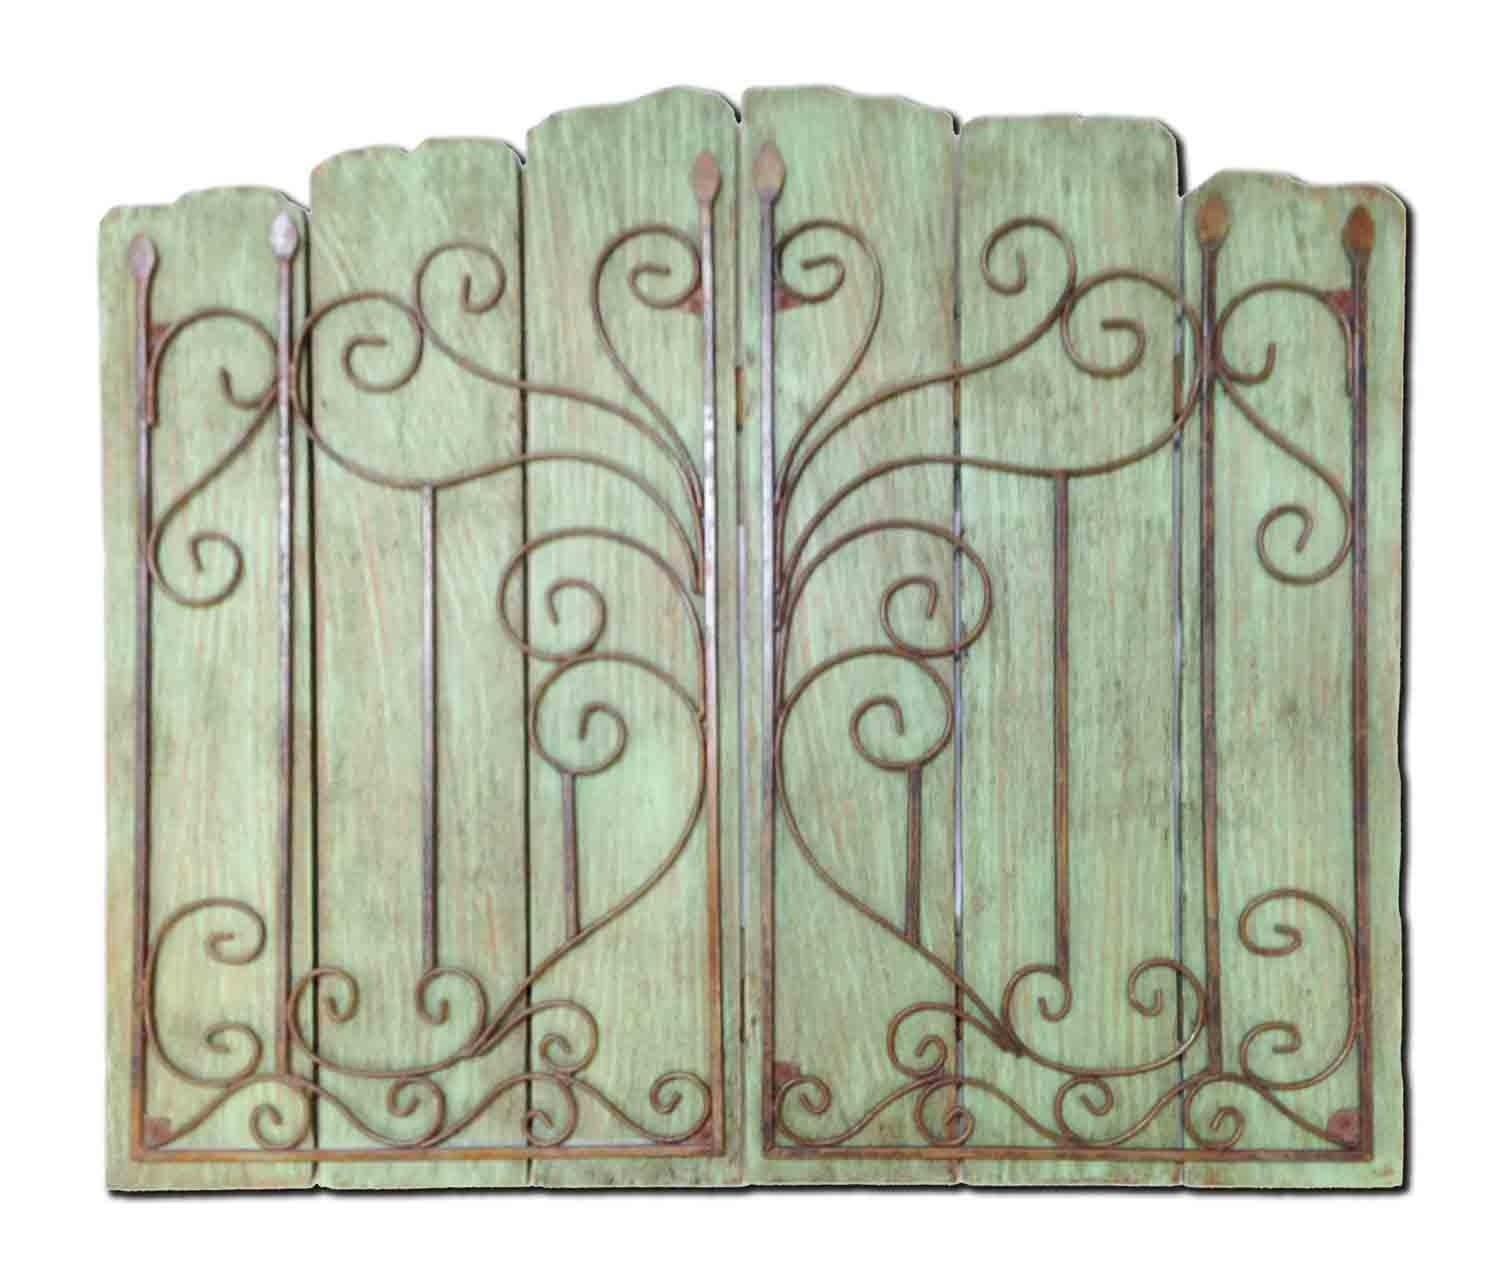 Metal Gate Metal Wall Art – Ptmimages With Regard To Metal Gate Wall Art (Image 9 of 20)